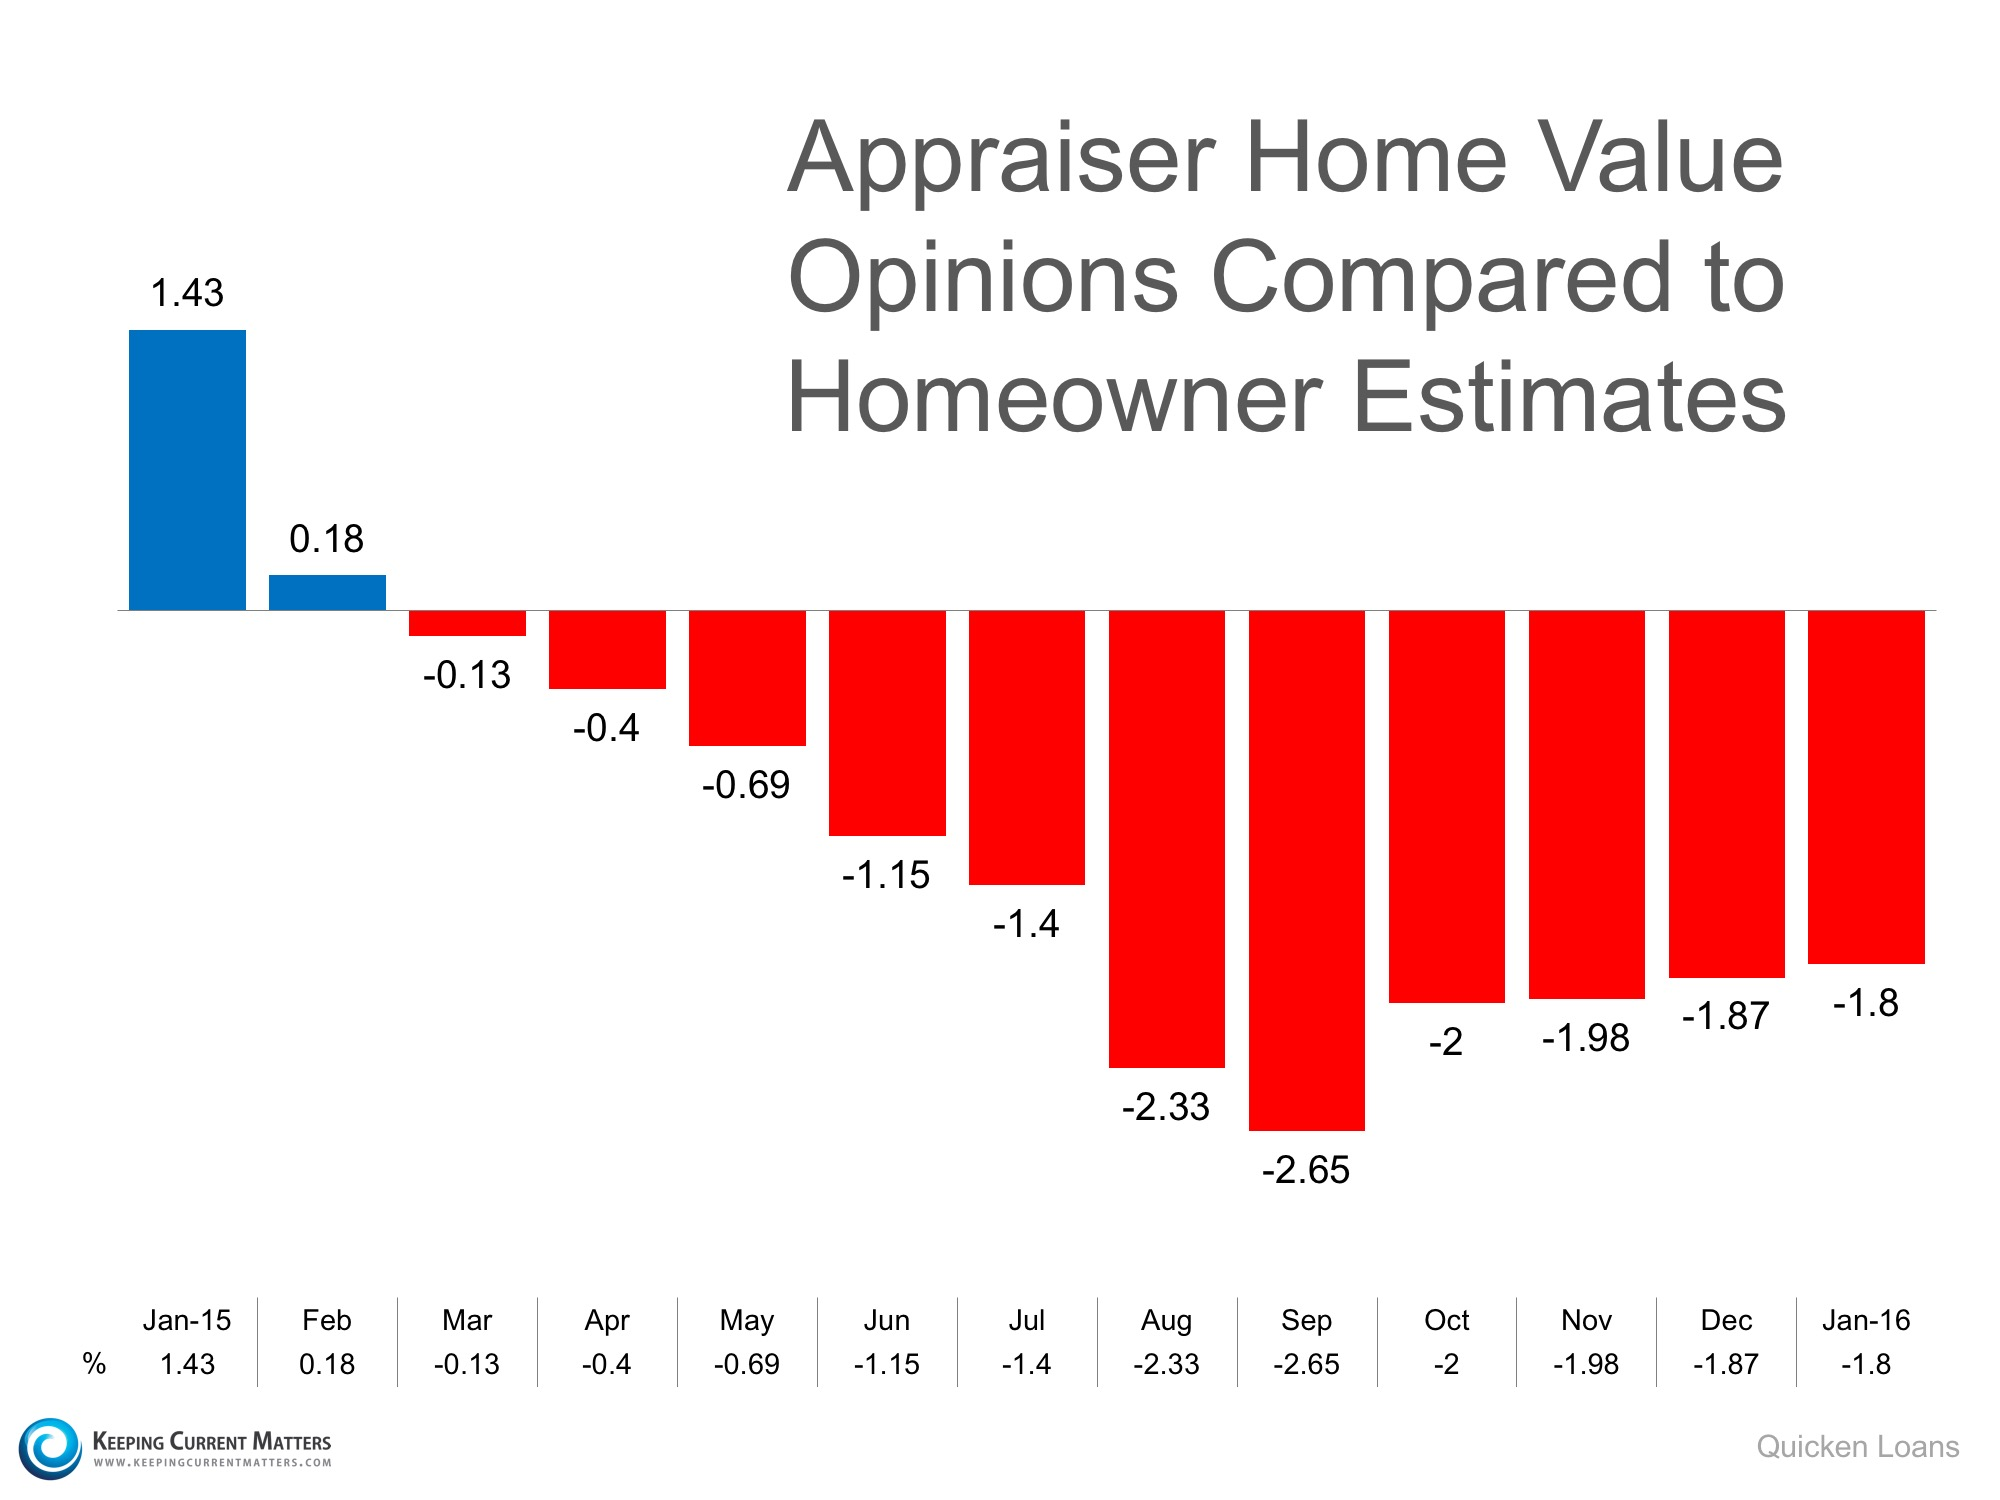 Home Value Opinions Compared to Homeowner Estimates